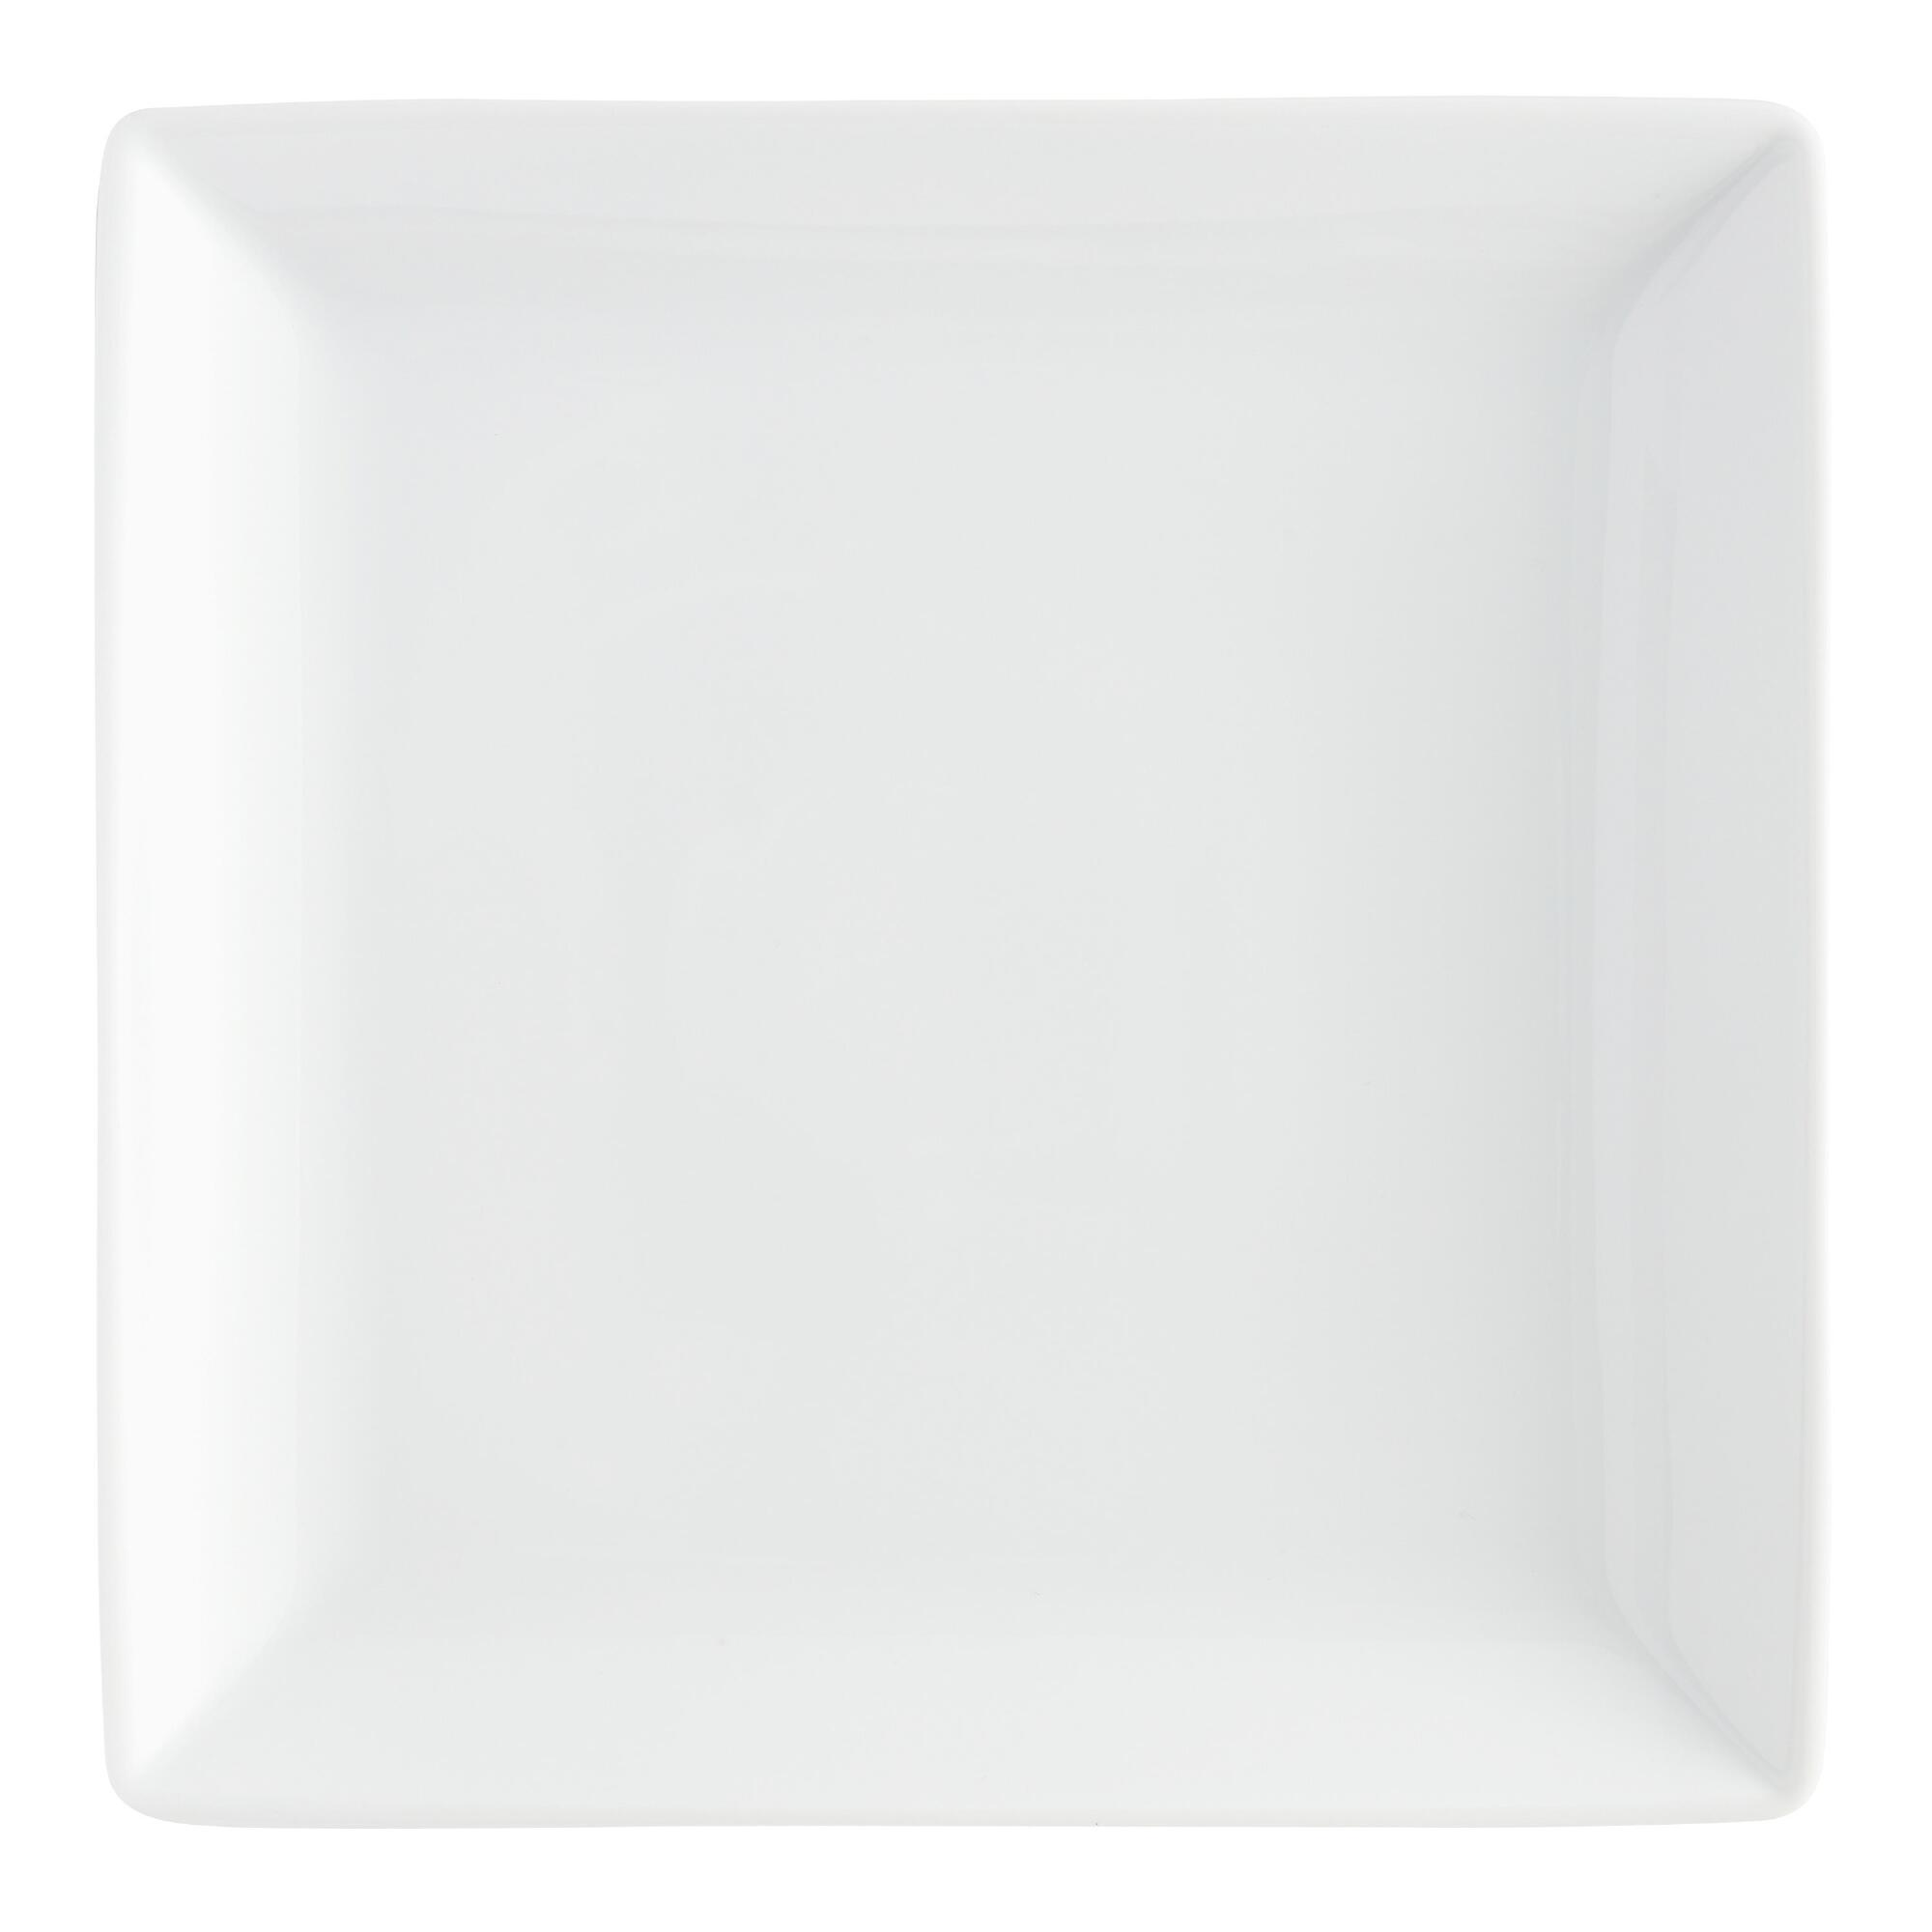 White Square coupe Dinner Plates, set of 4 - Porcelain by Wo